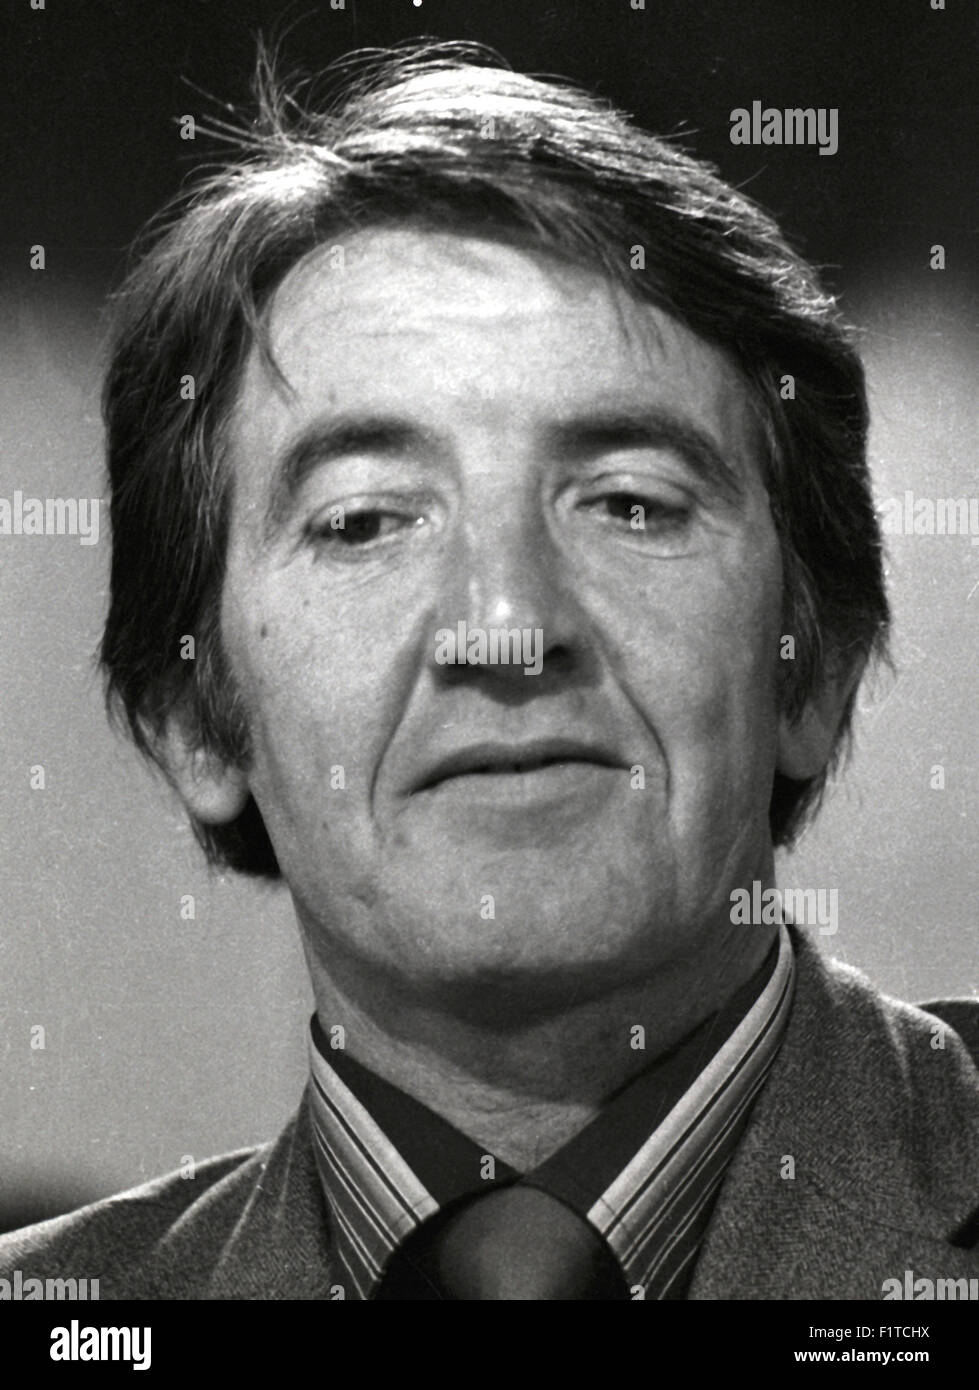 Dennis Skinner British Labour politician MP for Bolsover since 1970. 1984 image - Stock Image